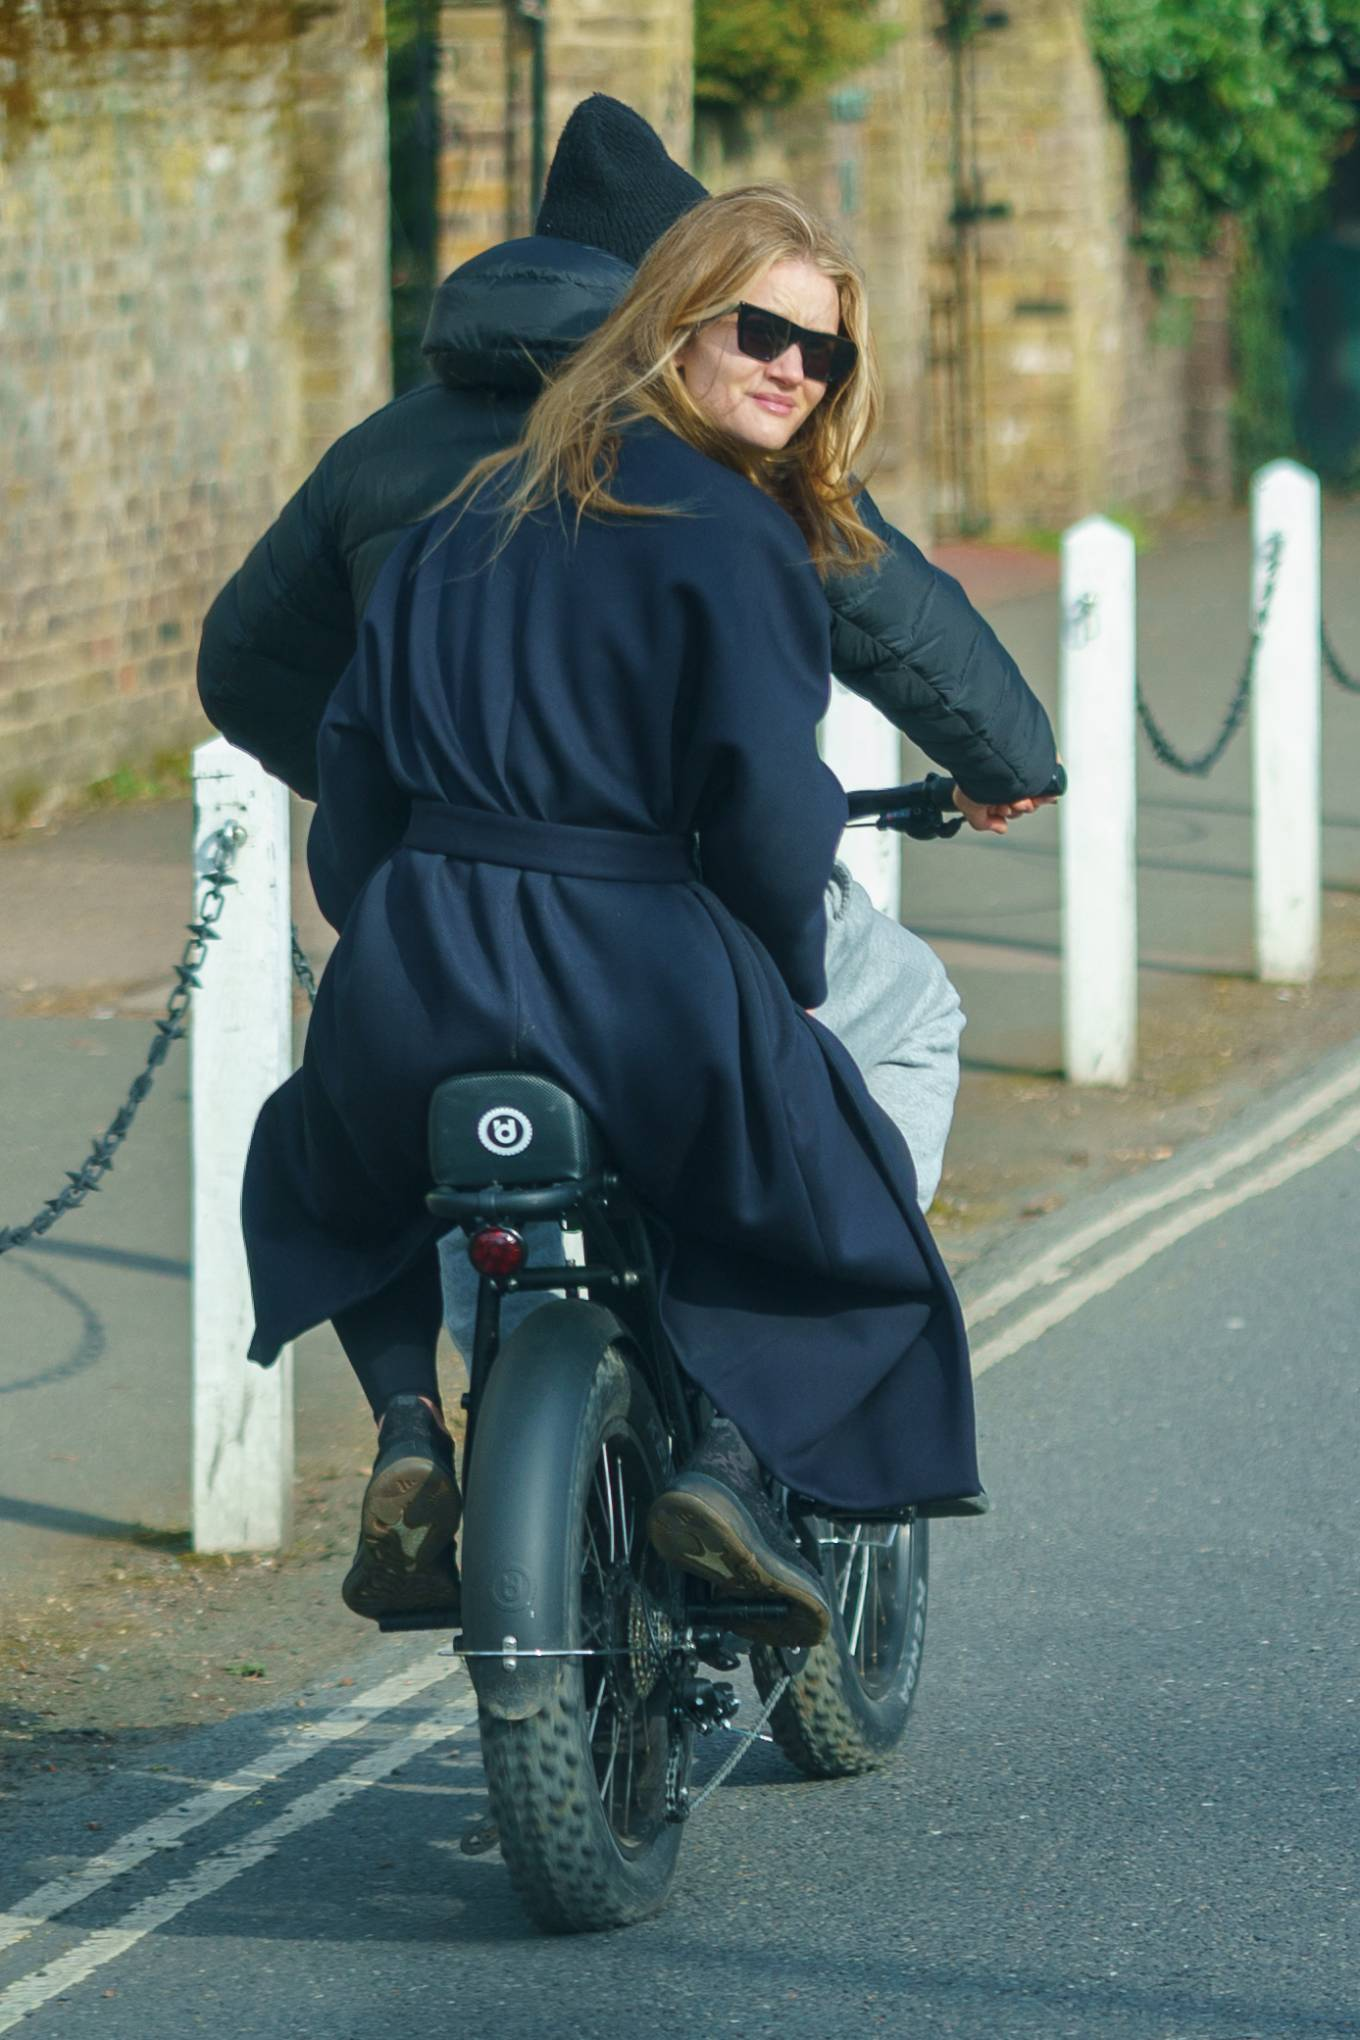 Rosie Huntington-Whiteley 2021 : Rosie Huntington-Whiteley – With Jason Statham ride electric bike in London-02